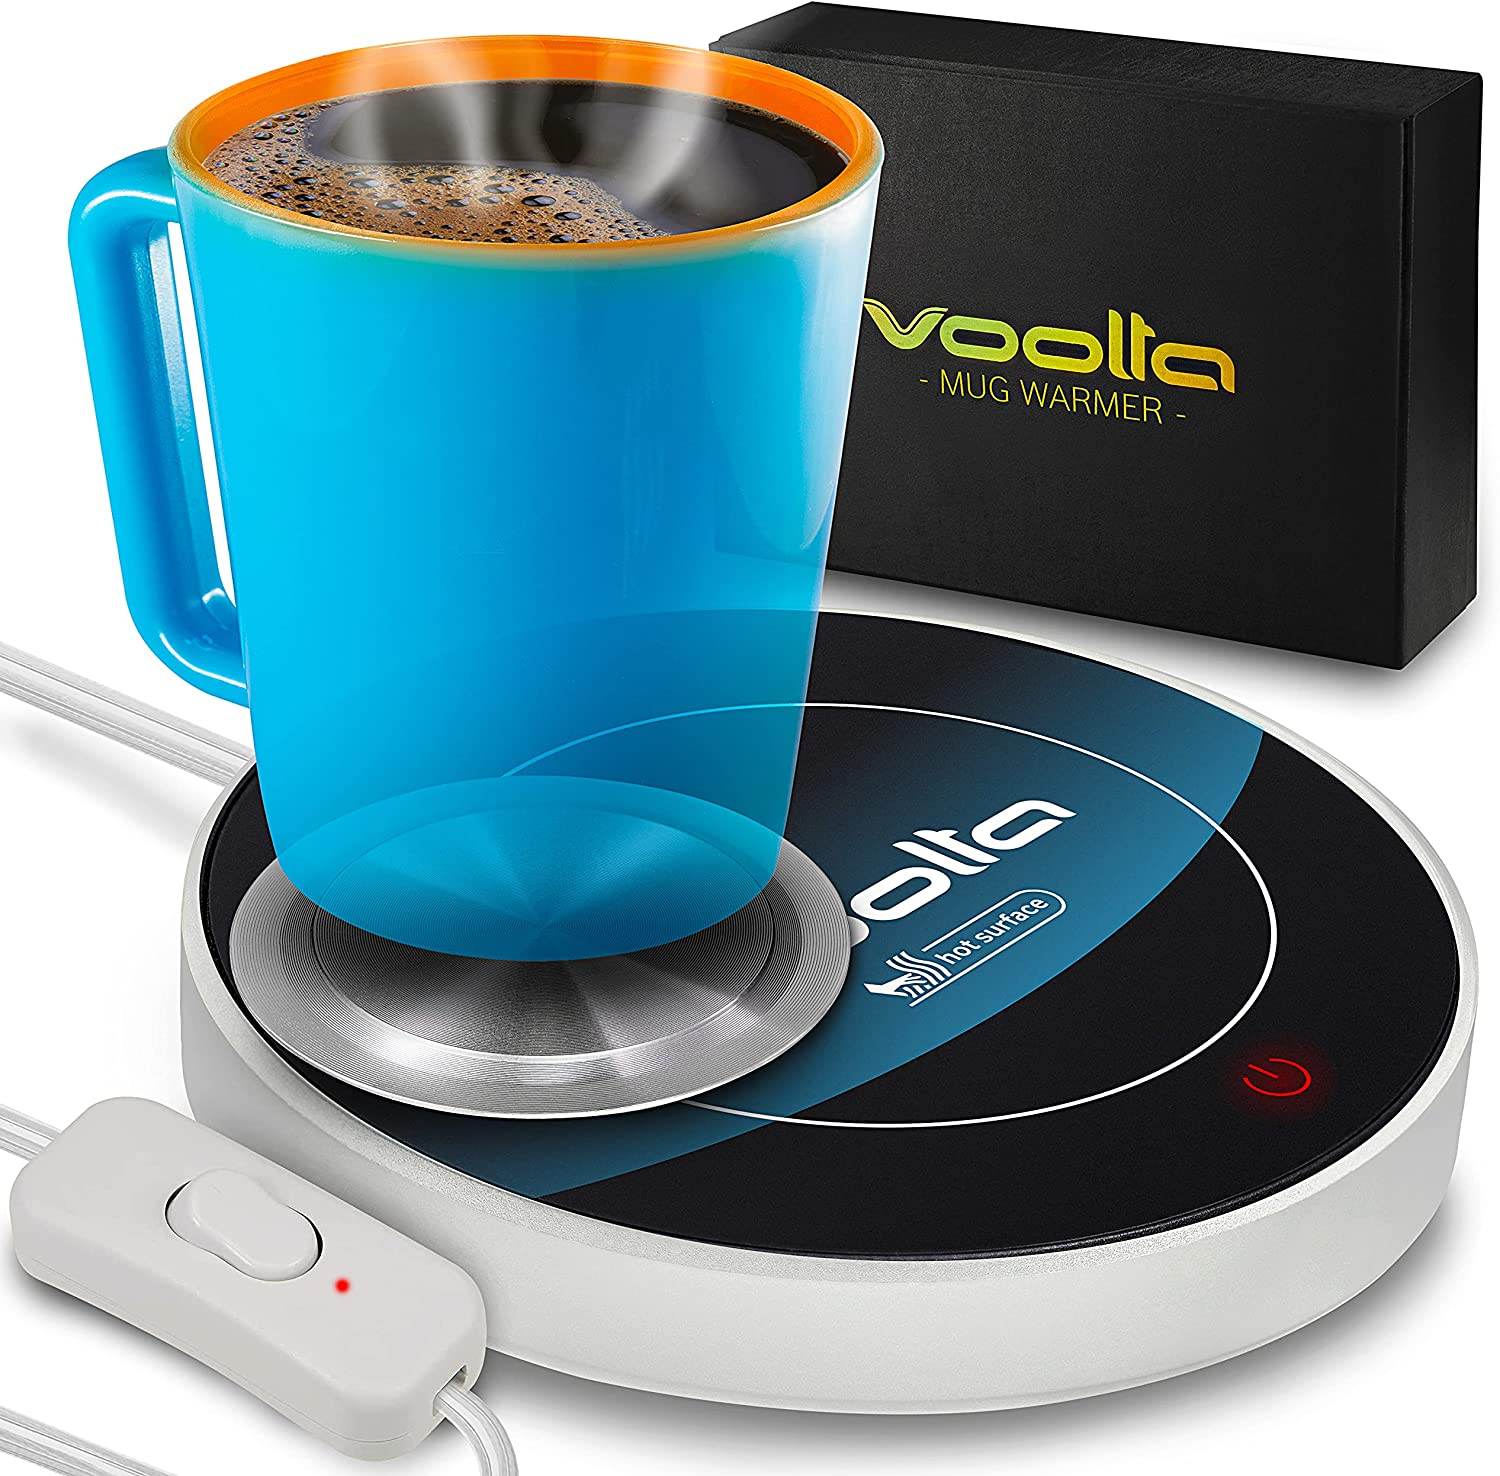 VOOLTA Gravity Smart Coffee Mug Warmer - Auto-Gravity Activated Coffee, Tea & Milk Cup Warmer for Desk - Concave Aluminum Heater Disk for All Style Cups - Tempered Glass Mug Warmer, Auto Shut Off